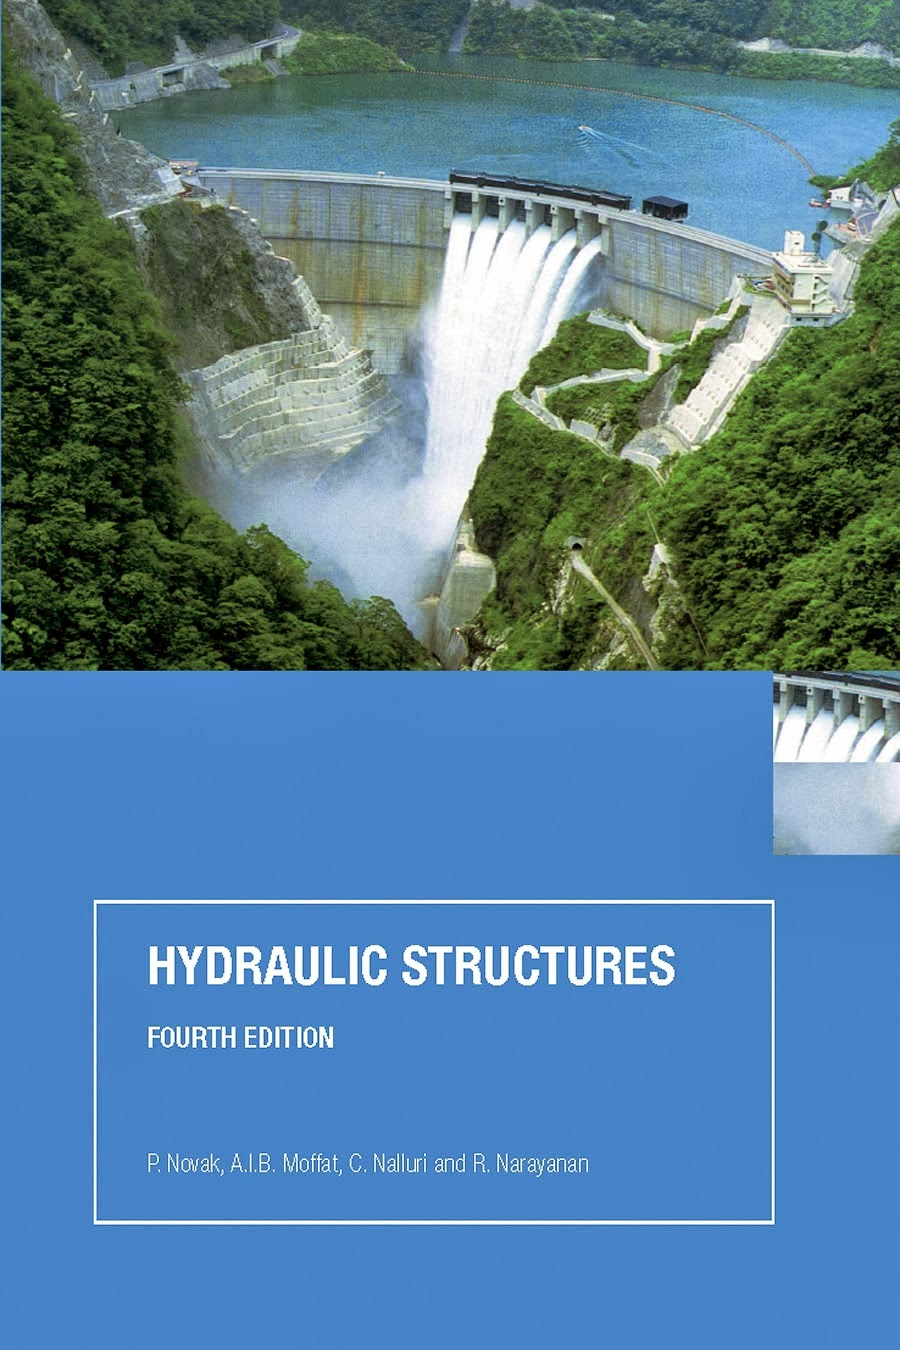 Hydraulic Structures 4th Edition by P.Novak